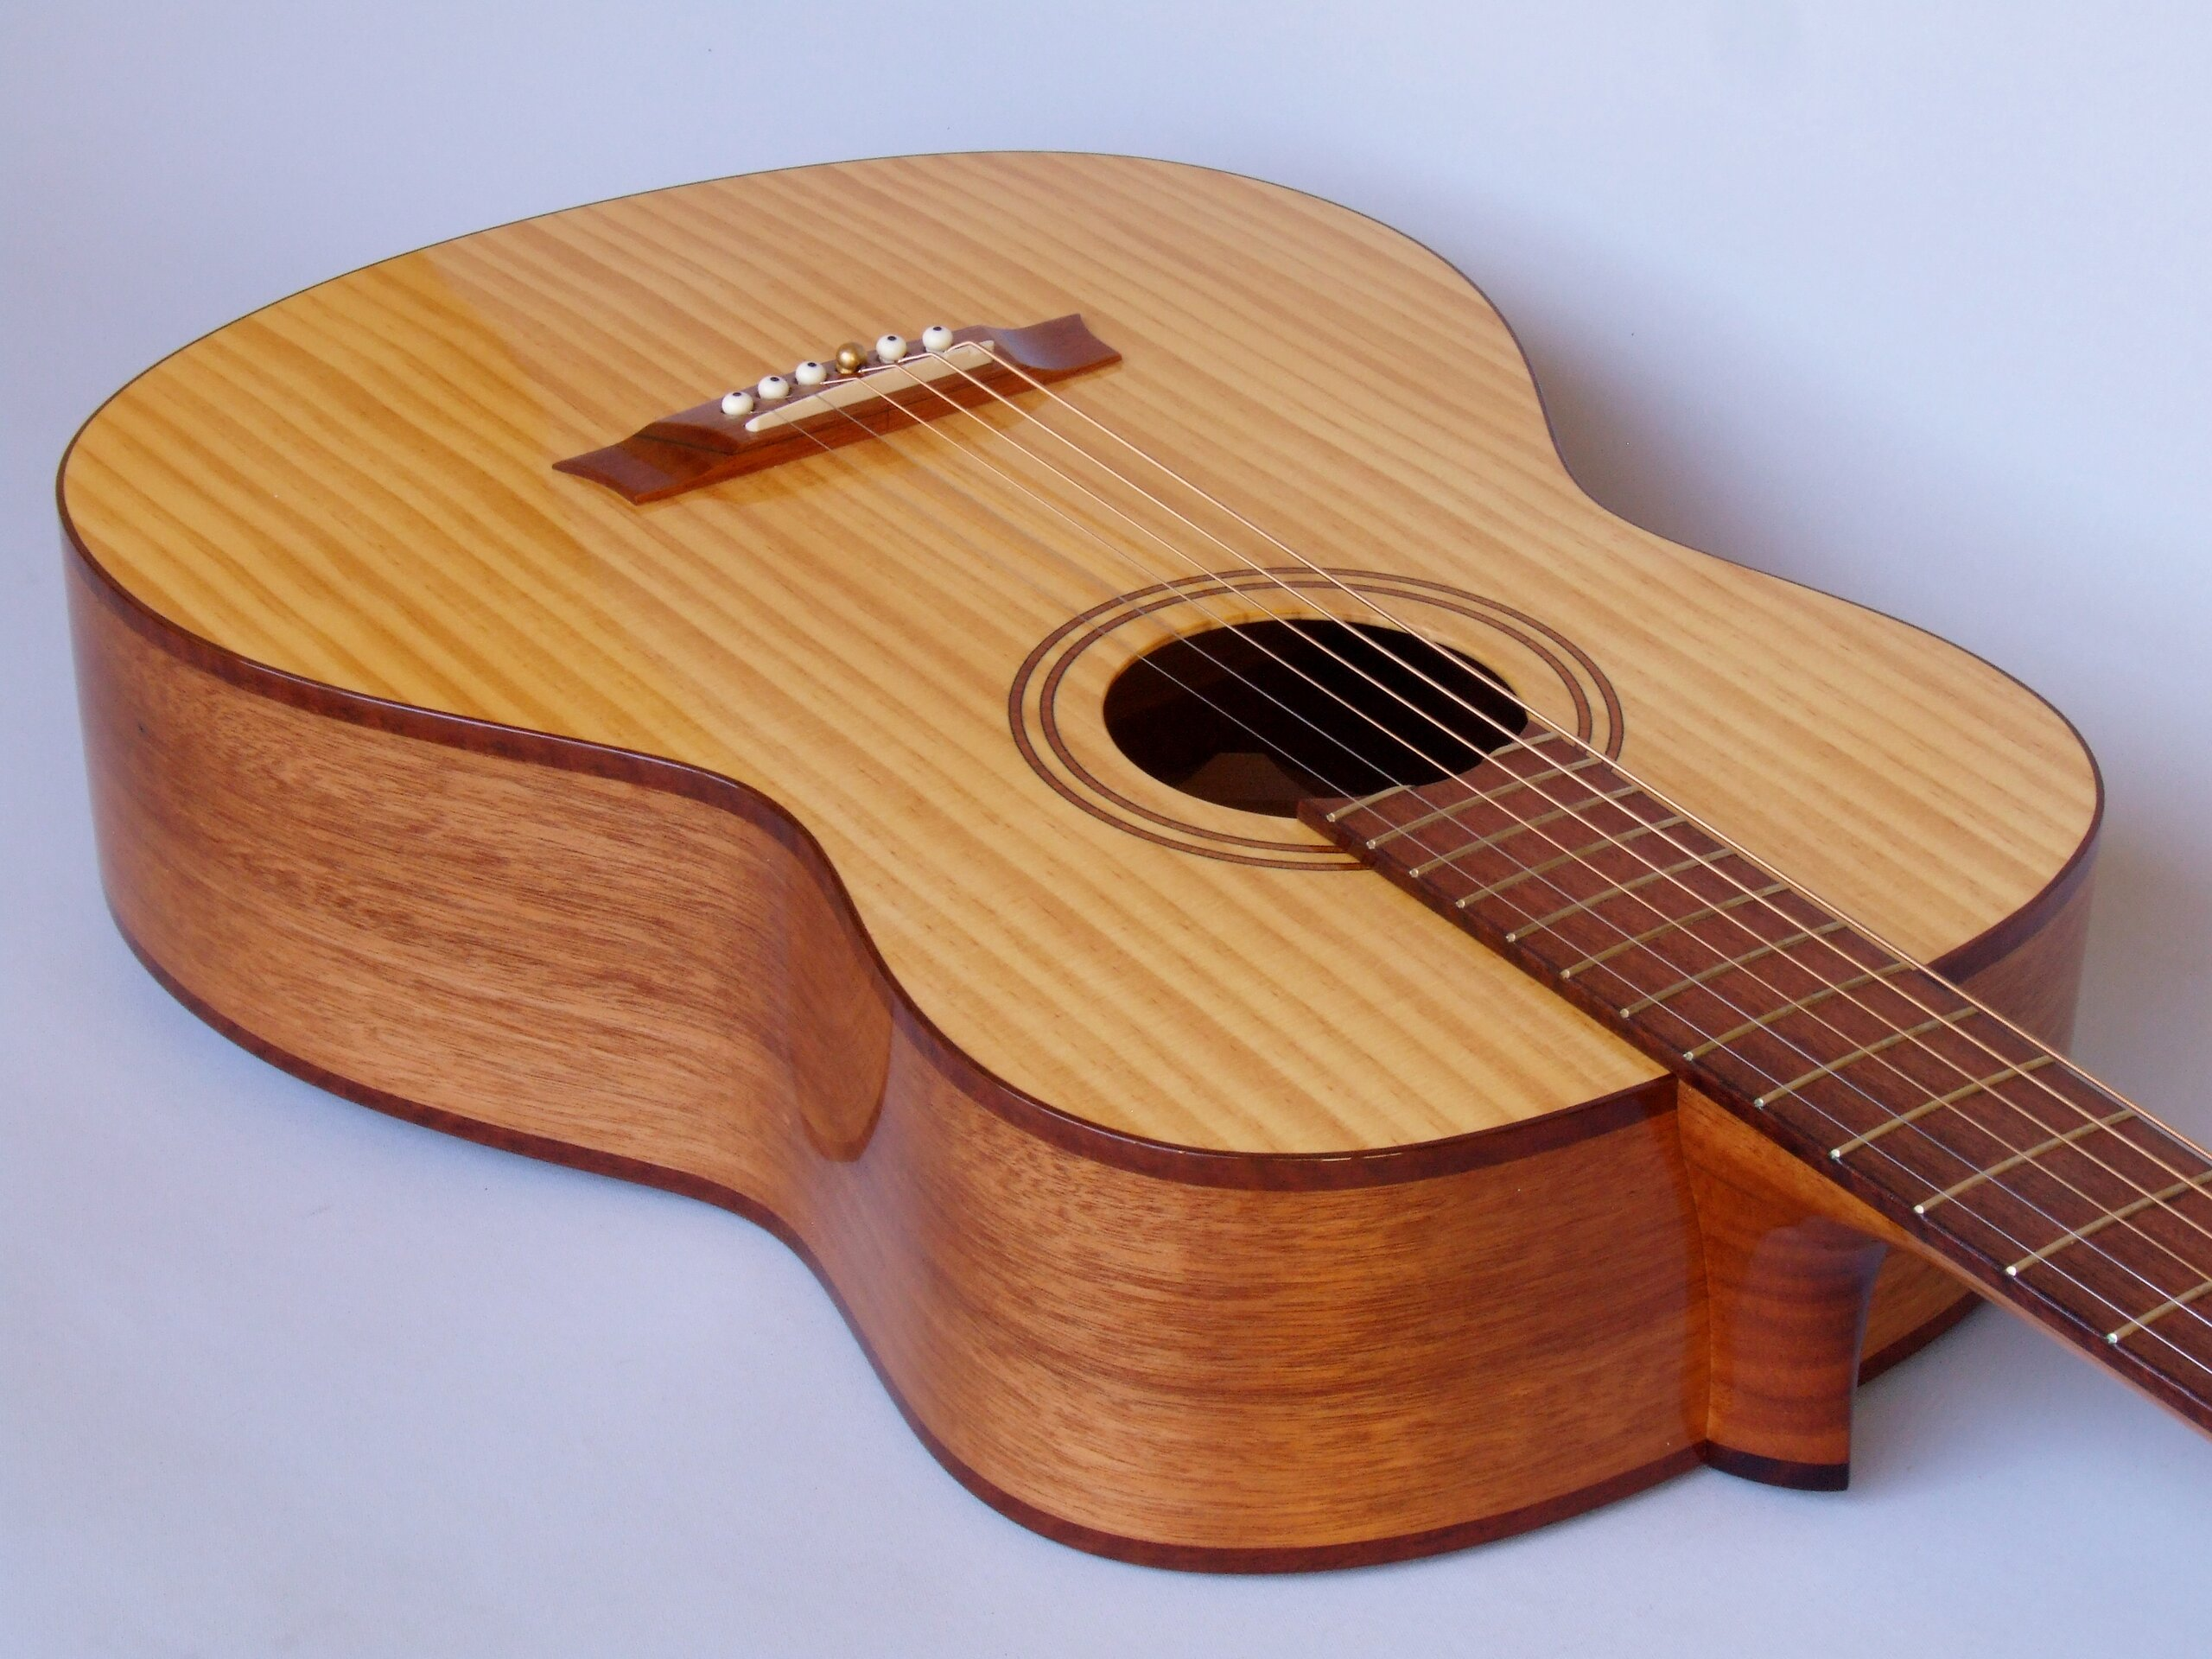 The Shed guitar with radiata pine top